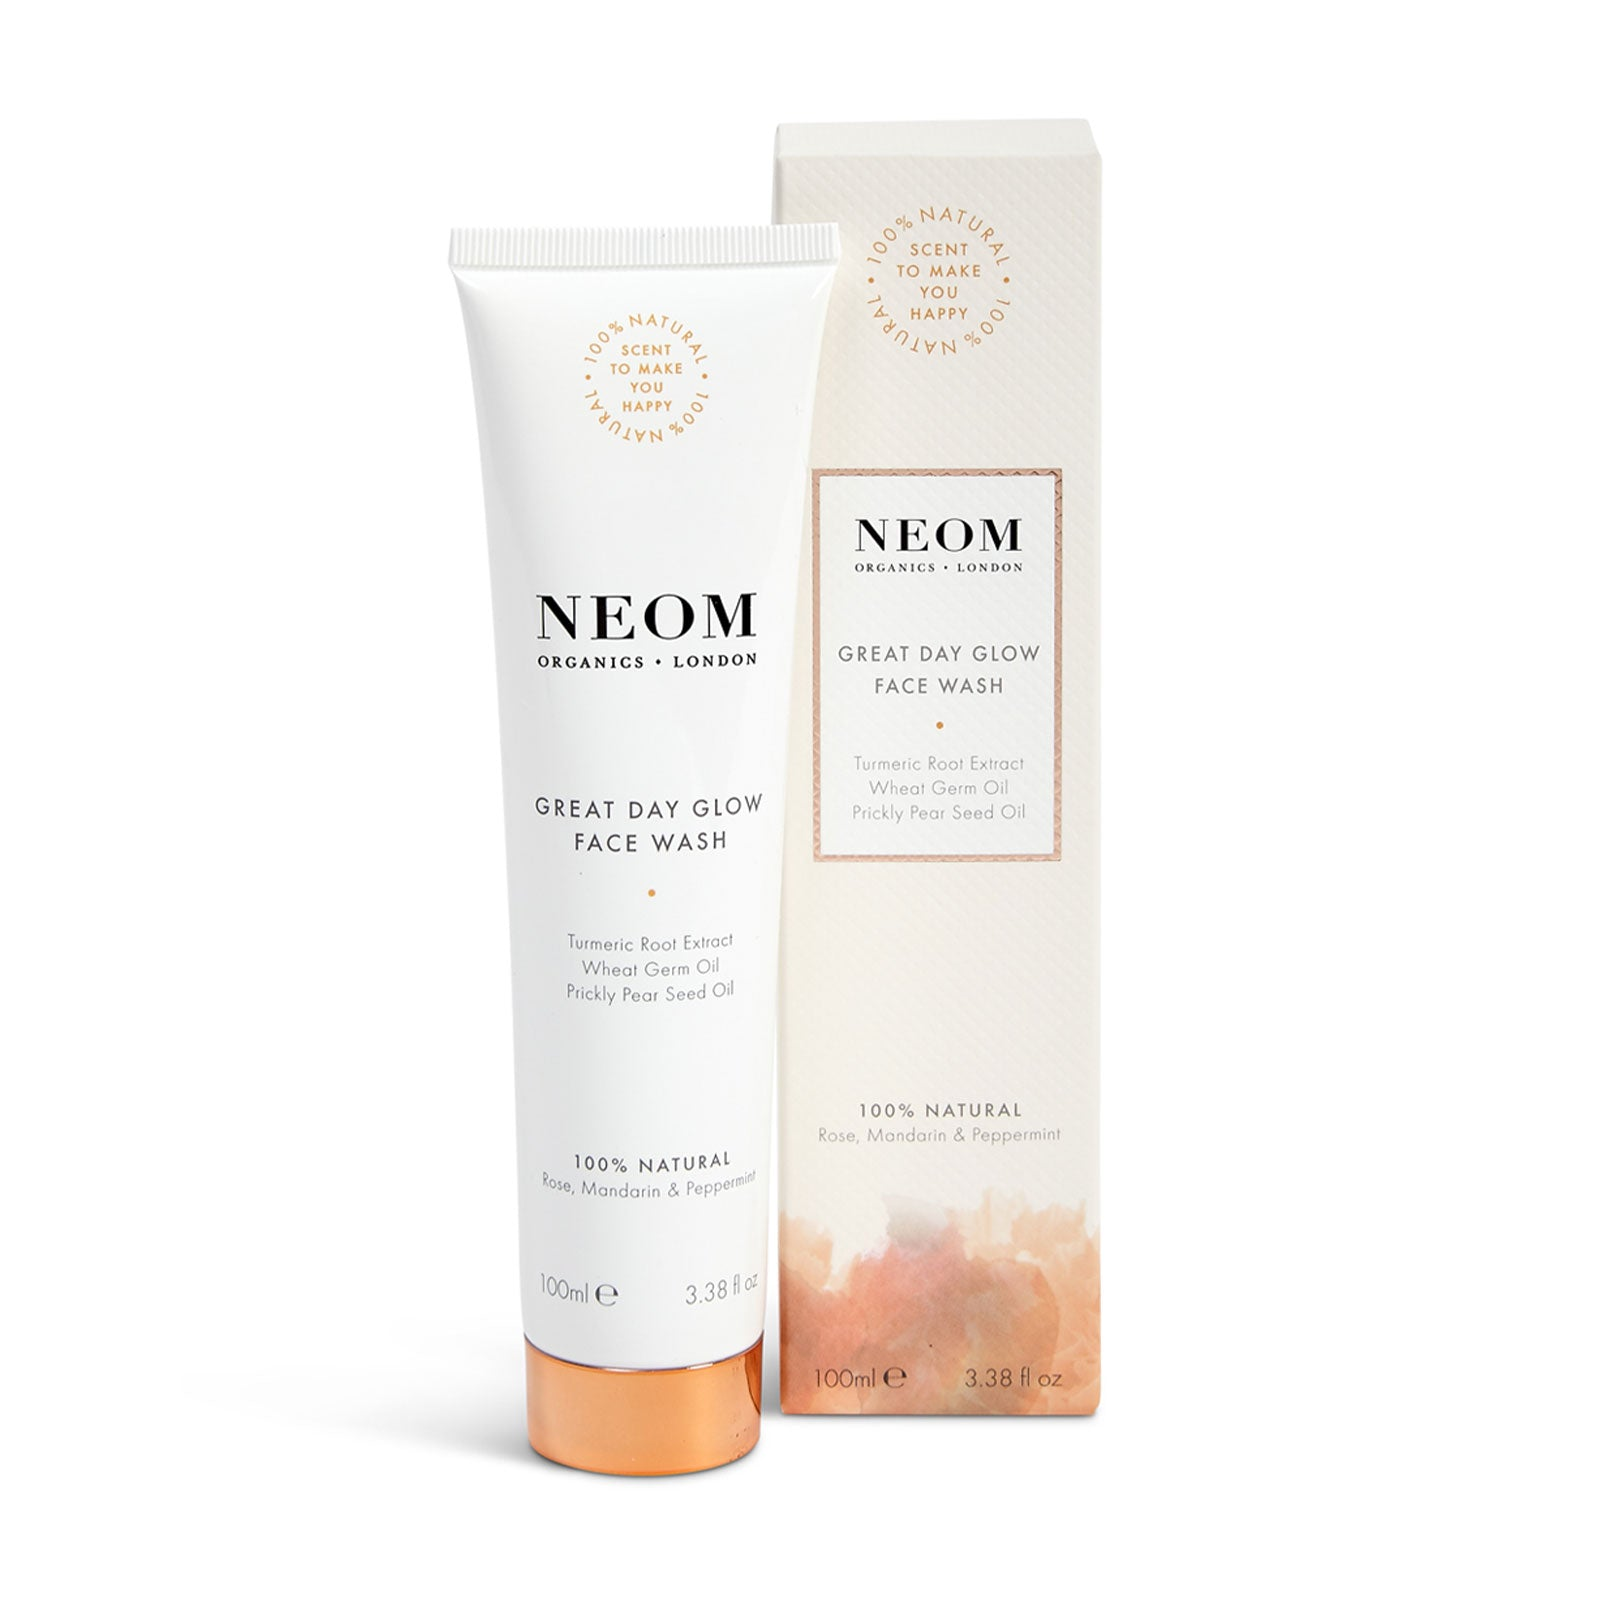 NEOM Organics London Great Day Glow Face Wash 100ml